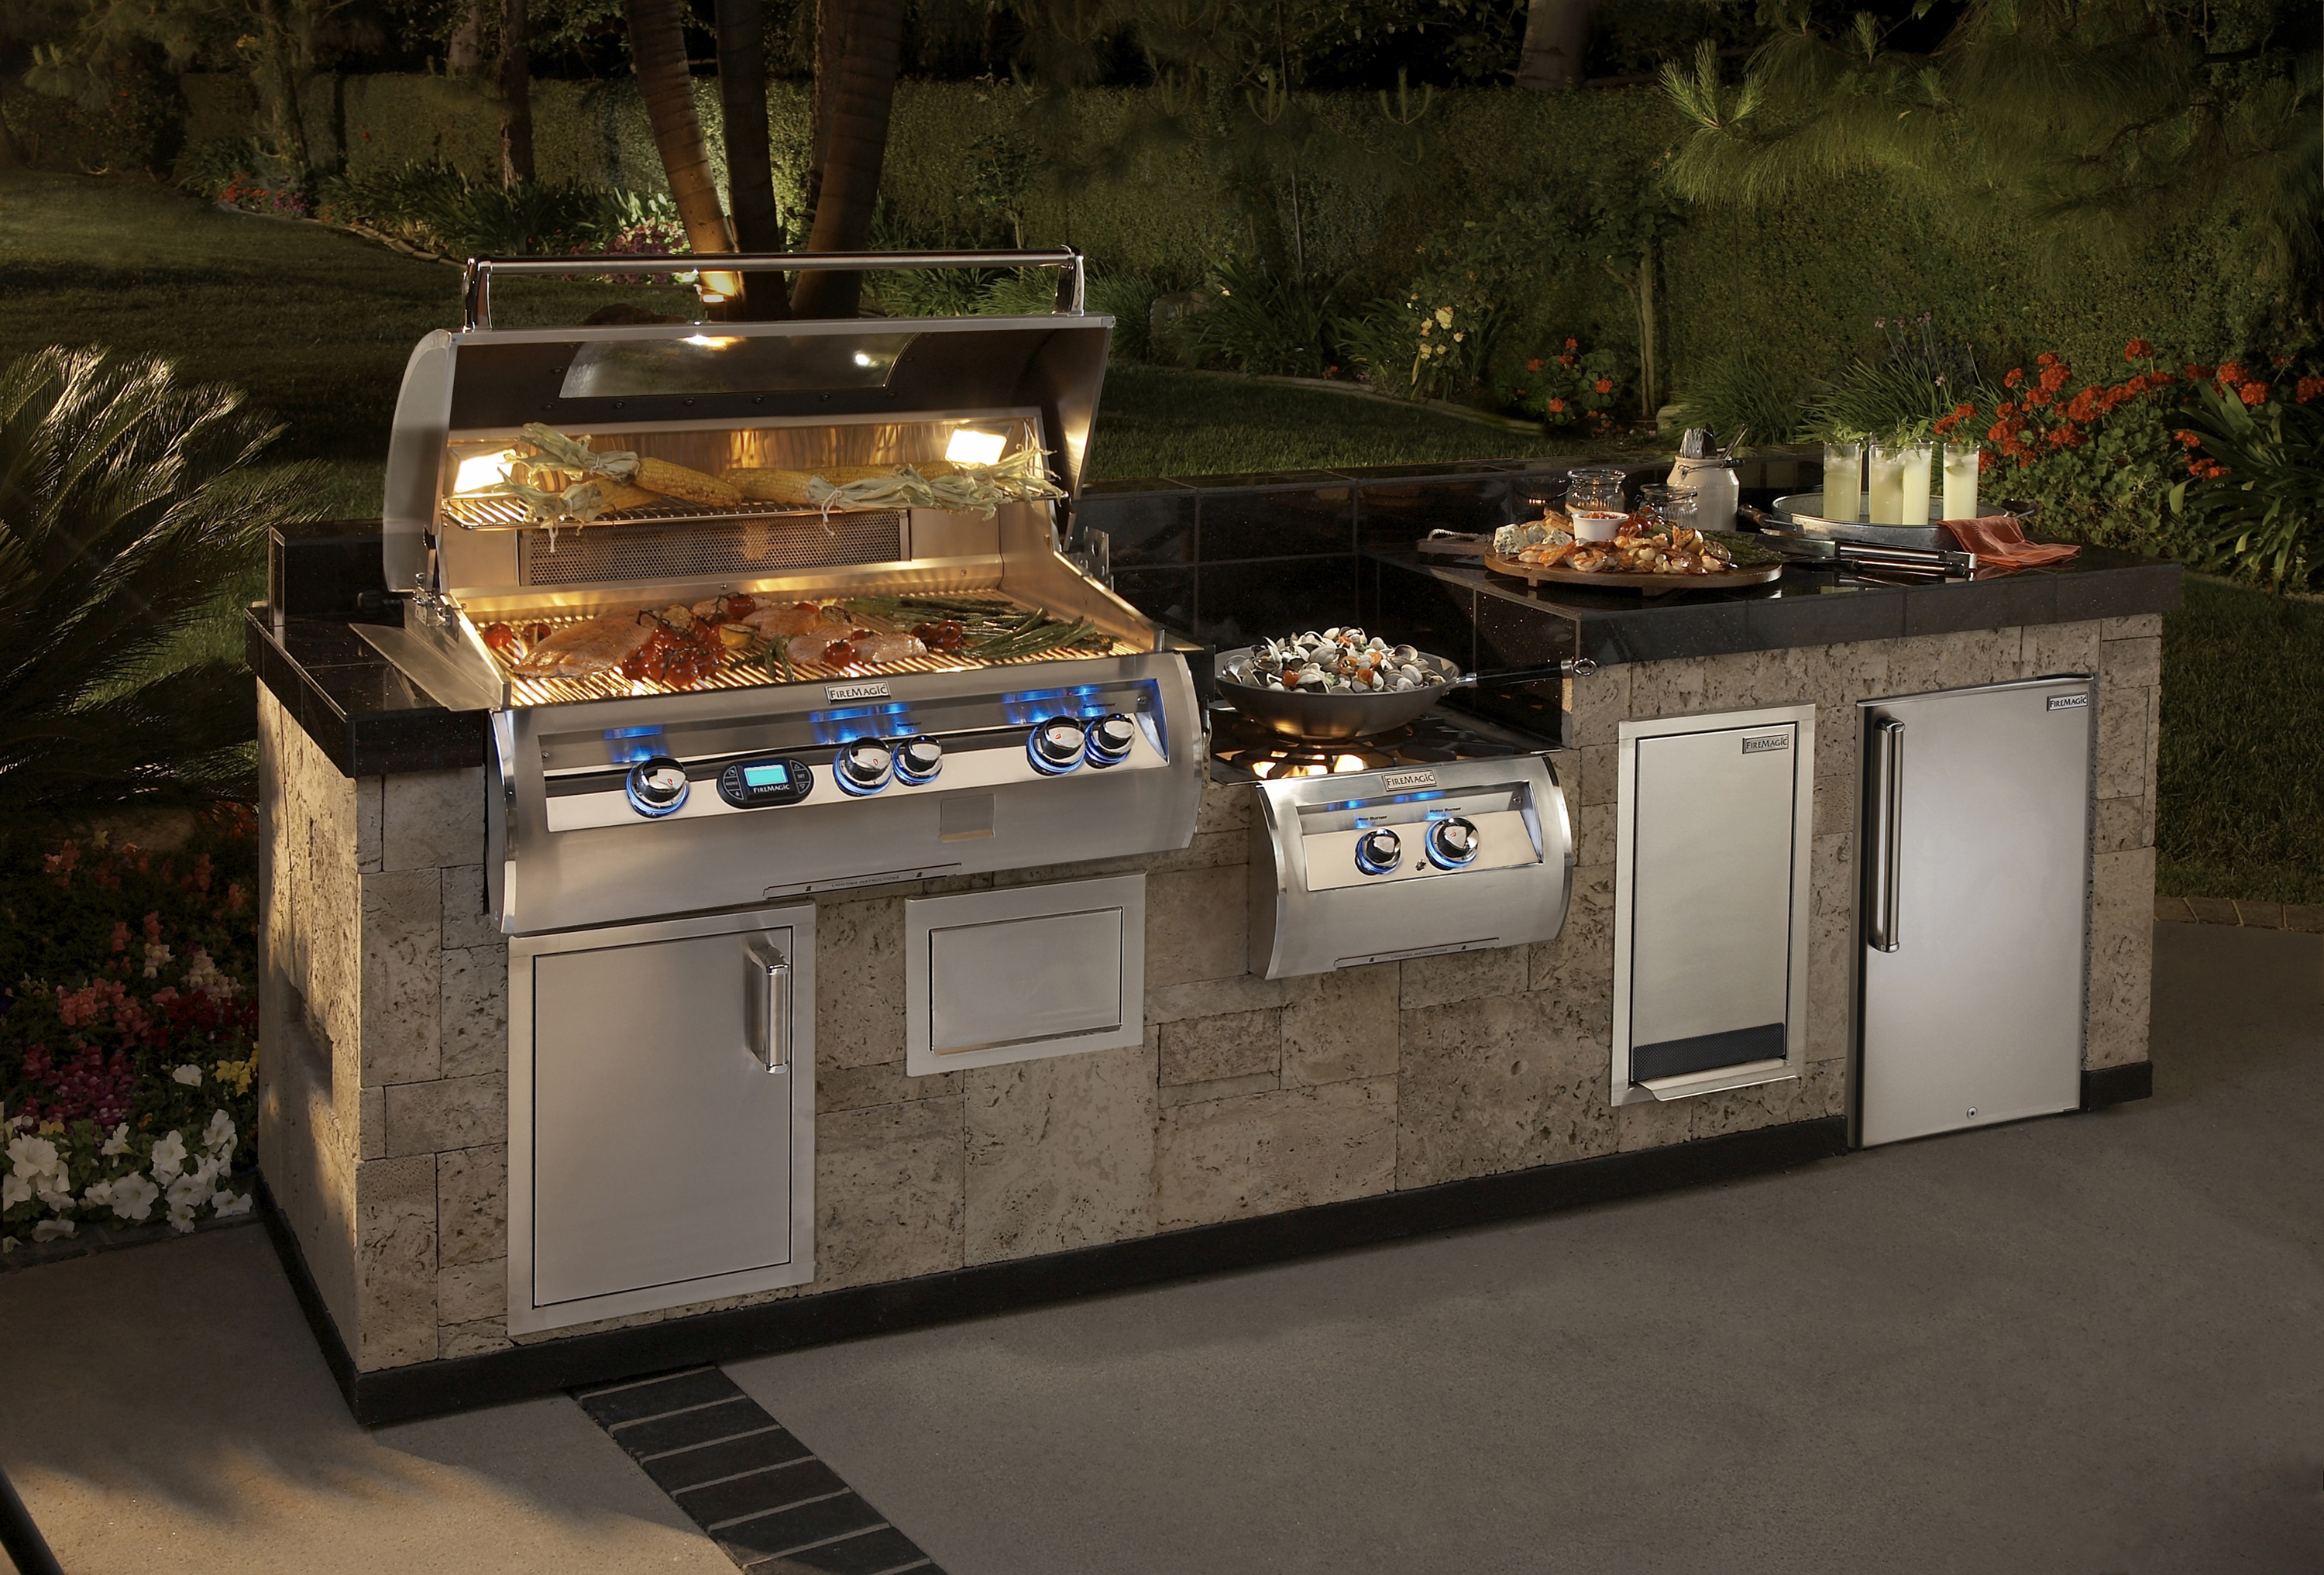 Design Outdoor Kitchen Online Twin Eagles Premium Grills Wildwood Outdoor Living Premium Outdoor